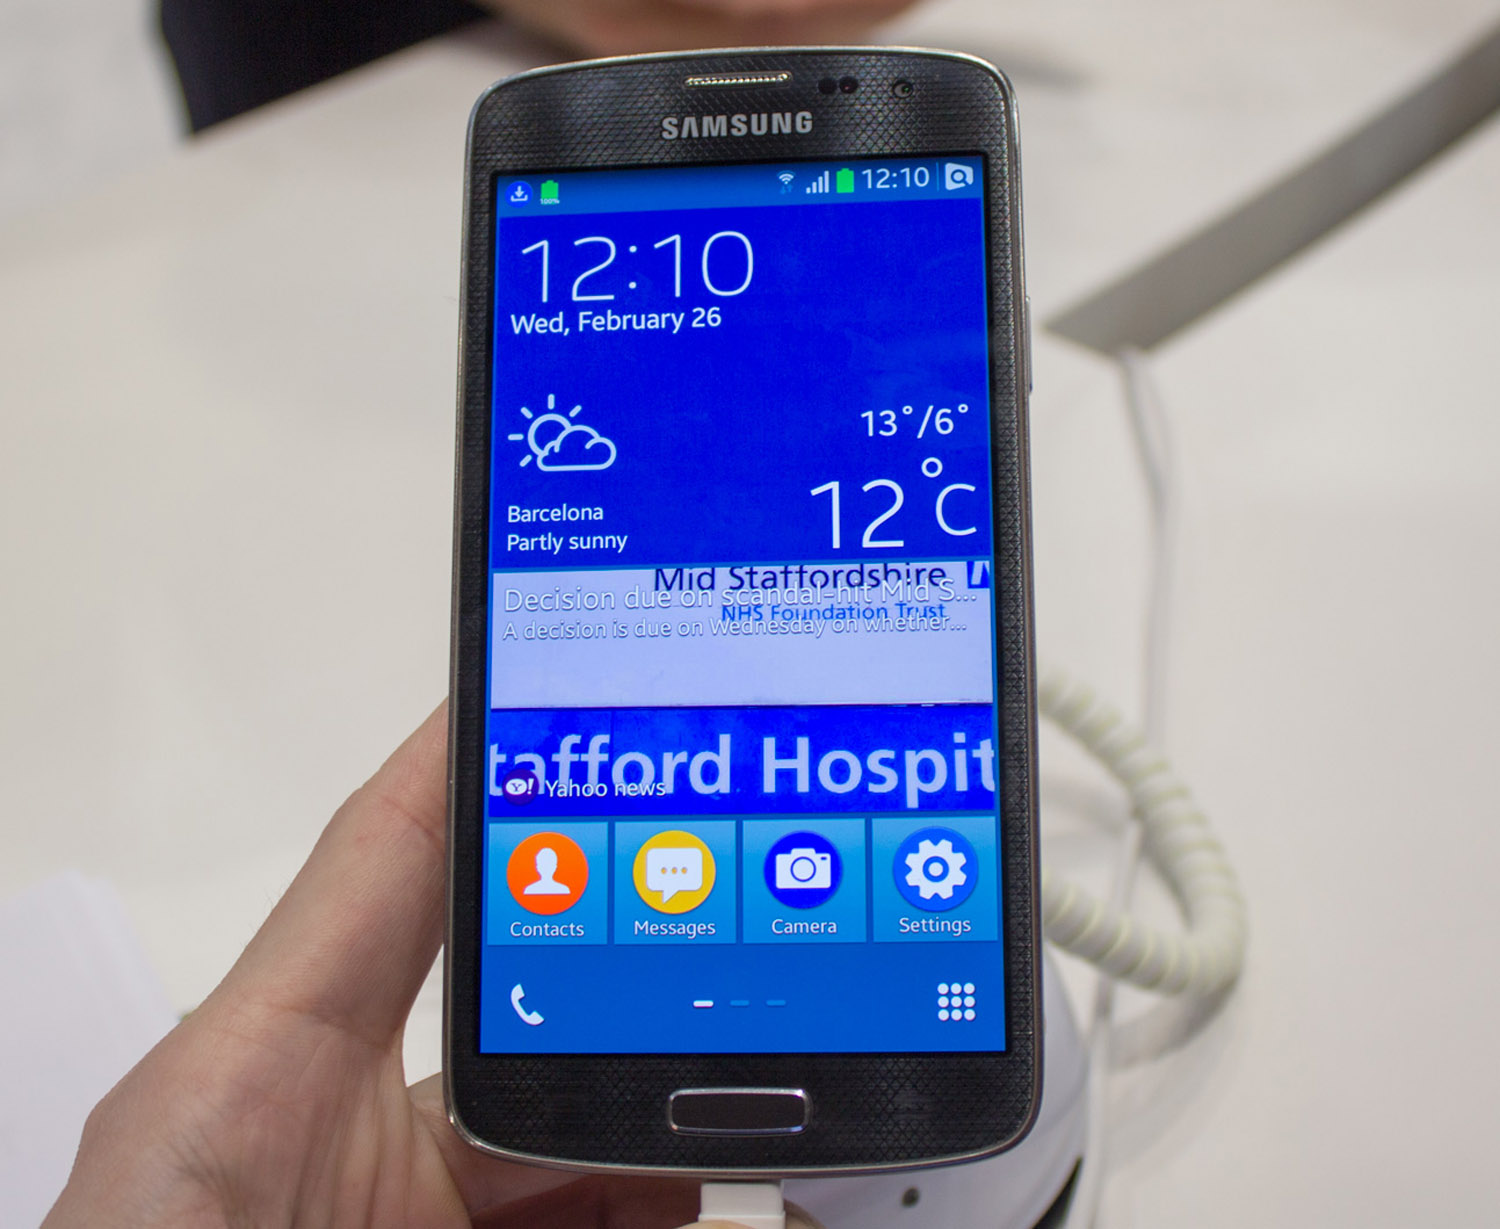 Os tizen samsung / T mobile phone top up